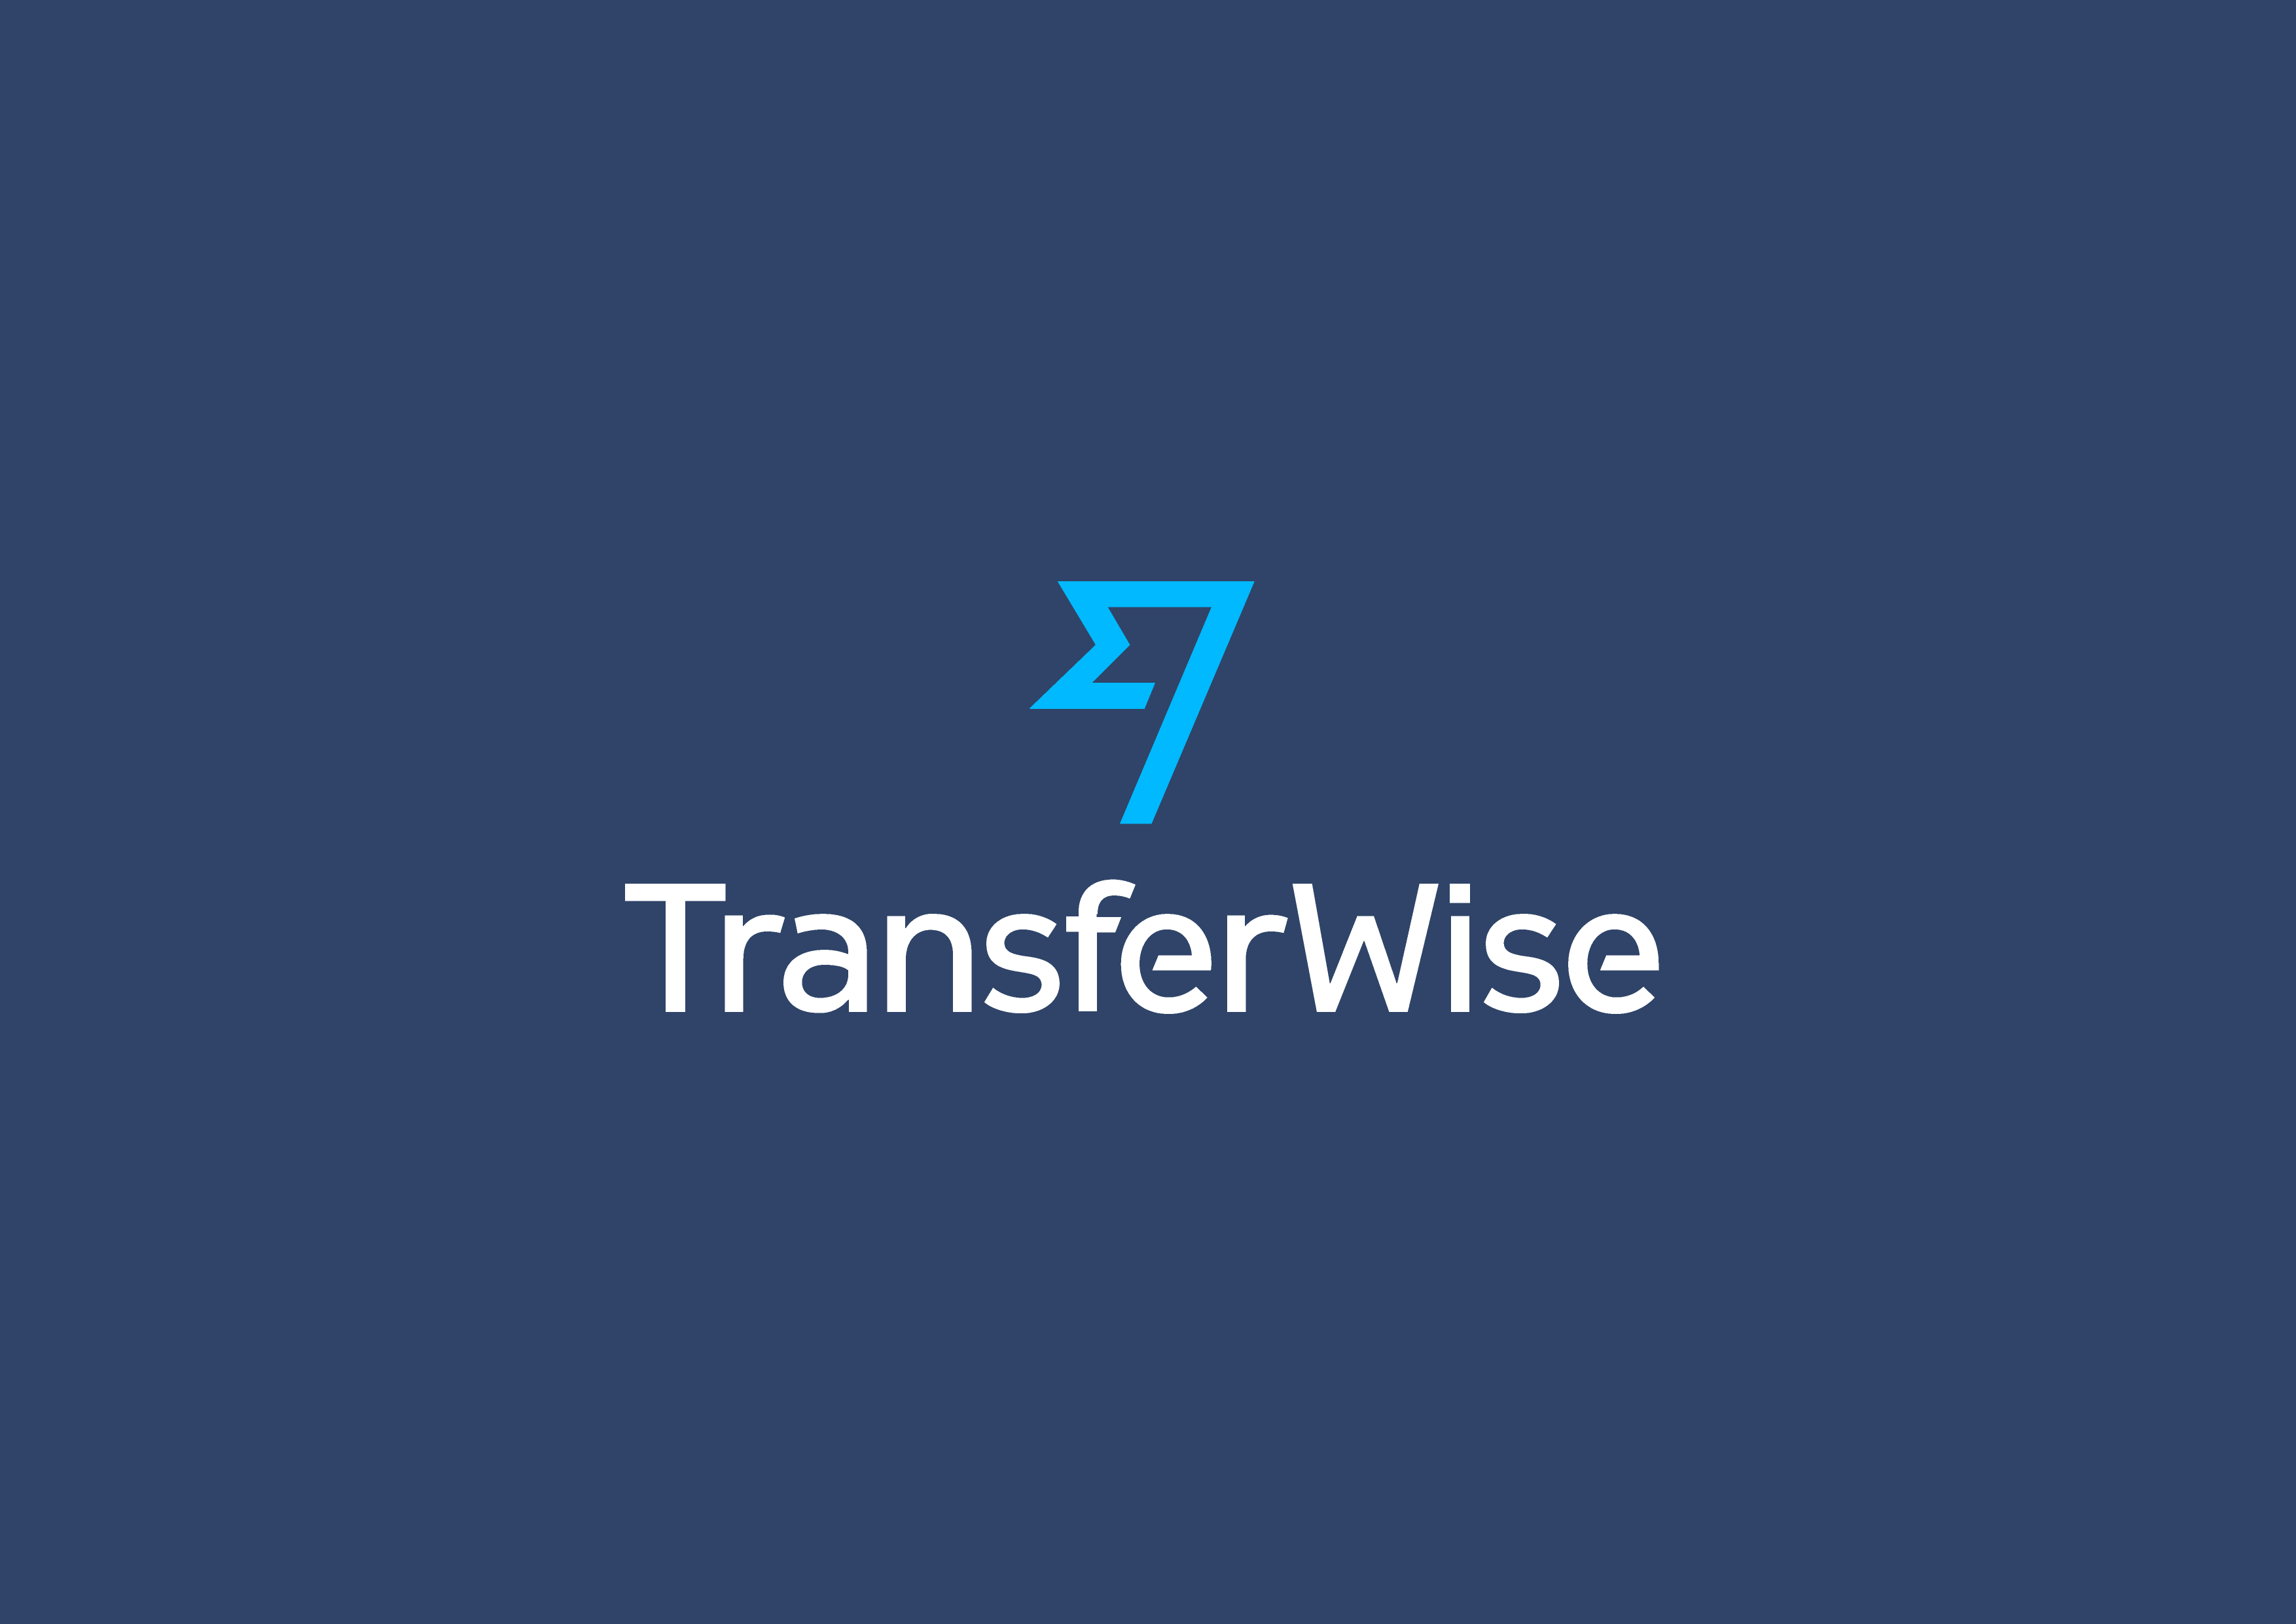 transferwise cover 01